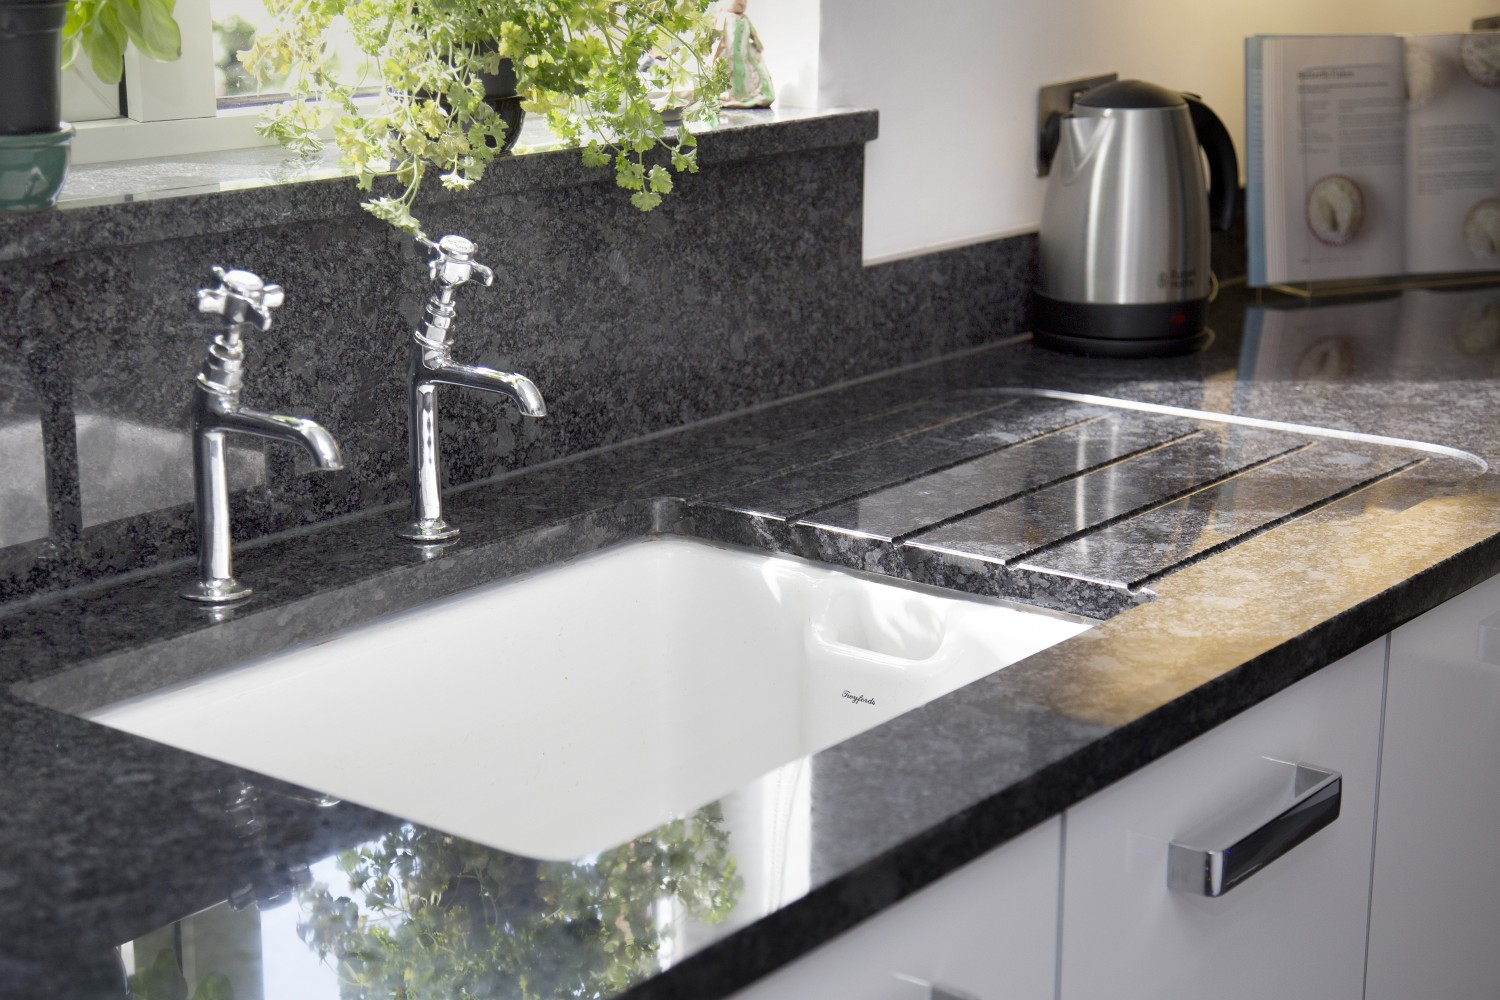 White Laminate Kitchen Worktops White Kitchen With Grey Quartz Worktop 19535220170515 Ponyiex